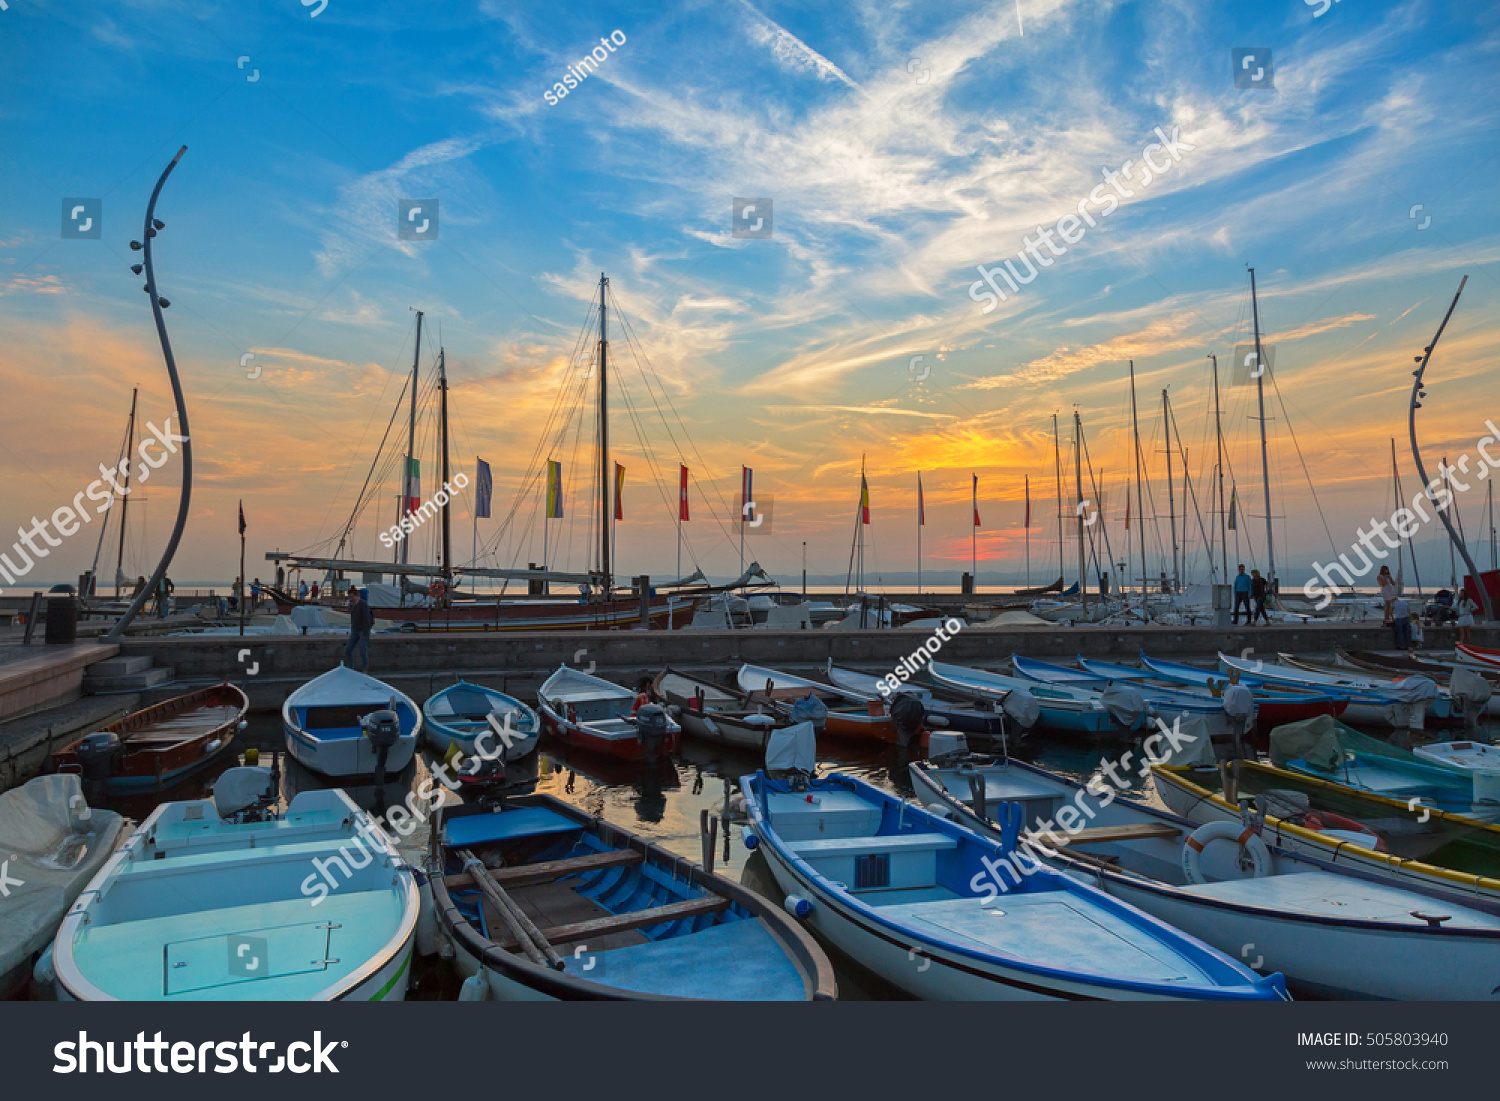 LAKE GARDA ITALY SEPTEMBER 2016 Sailboats fishing boats at Porto di Bardolino harbor on The Garda Lake during sunset in Italy on September 24 2016 It is largest lake in Italy